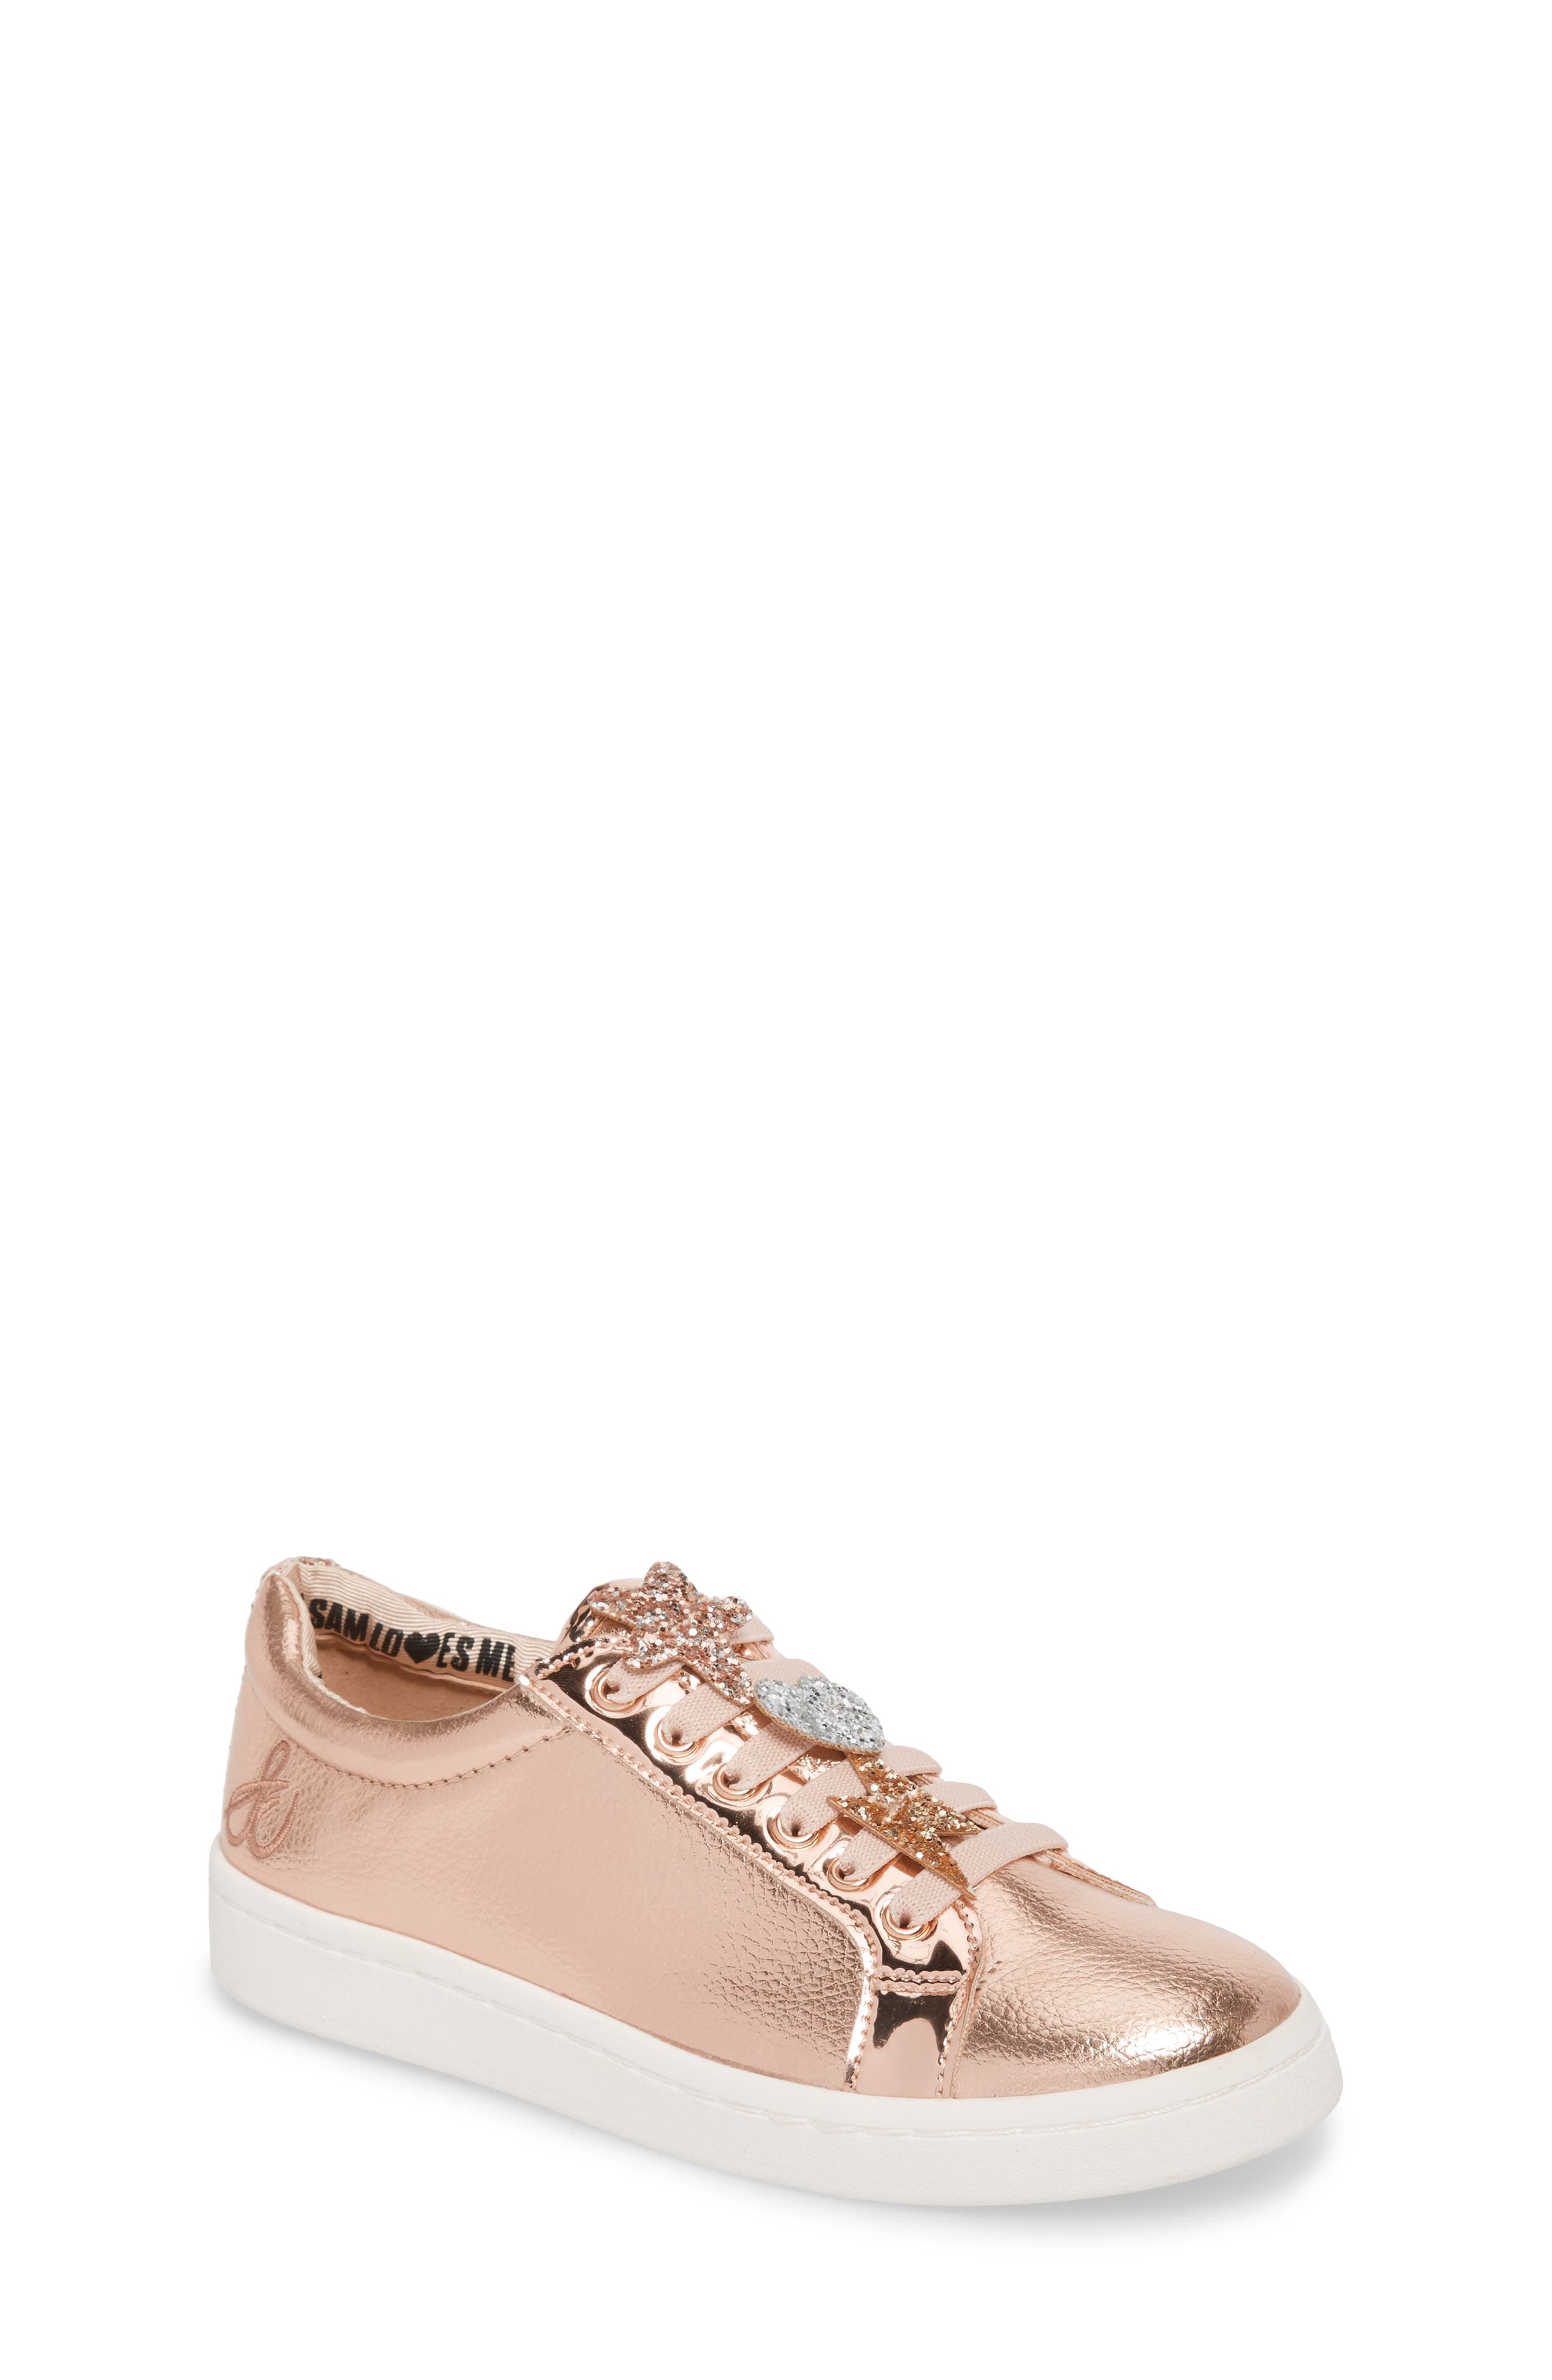 Blane Sammie Slip-On Sneaker,                         Main,                         color, Rose Gold Faux Leather